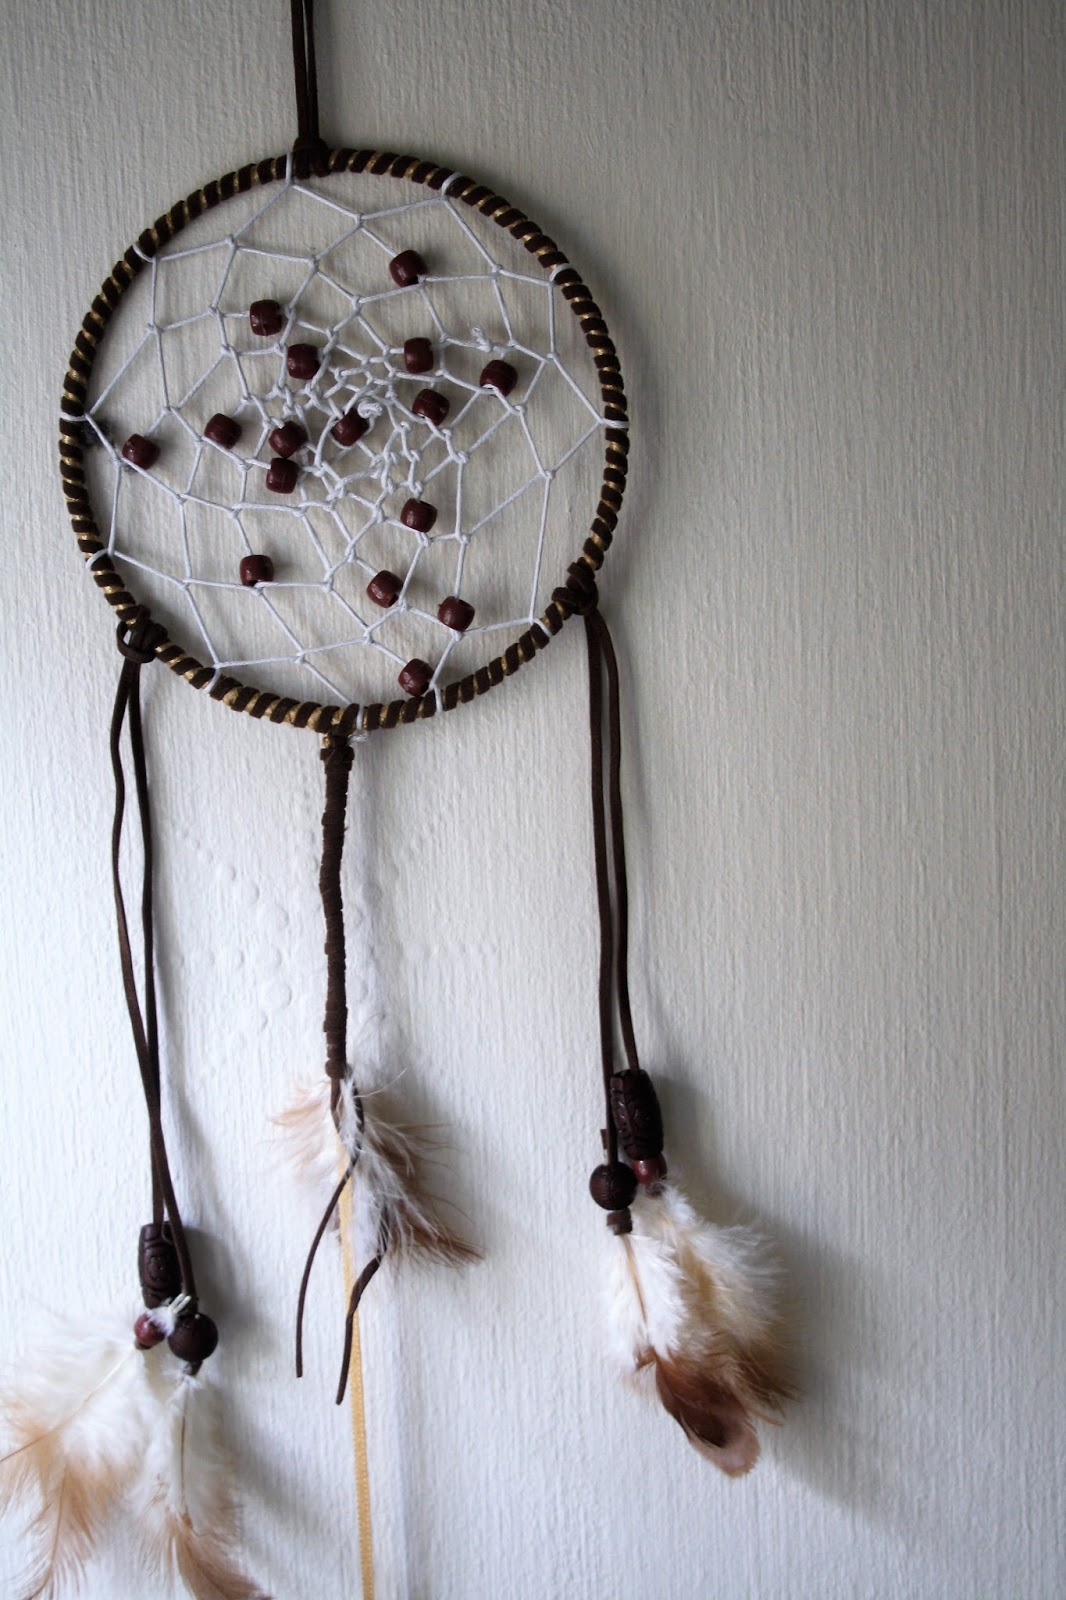 knitwitsowls 1 make your own dream catcher from the